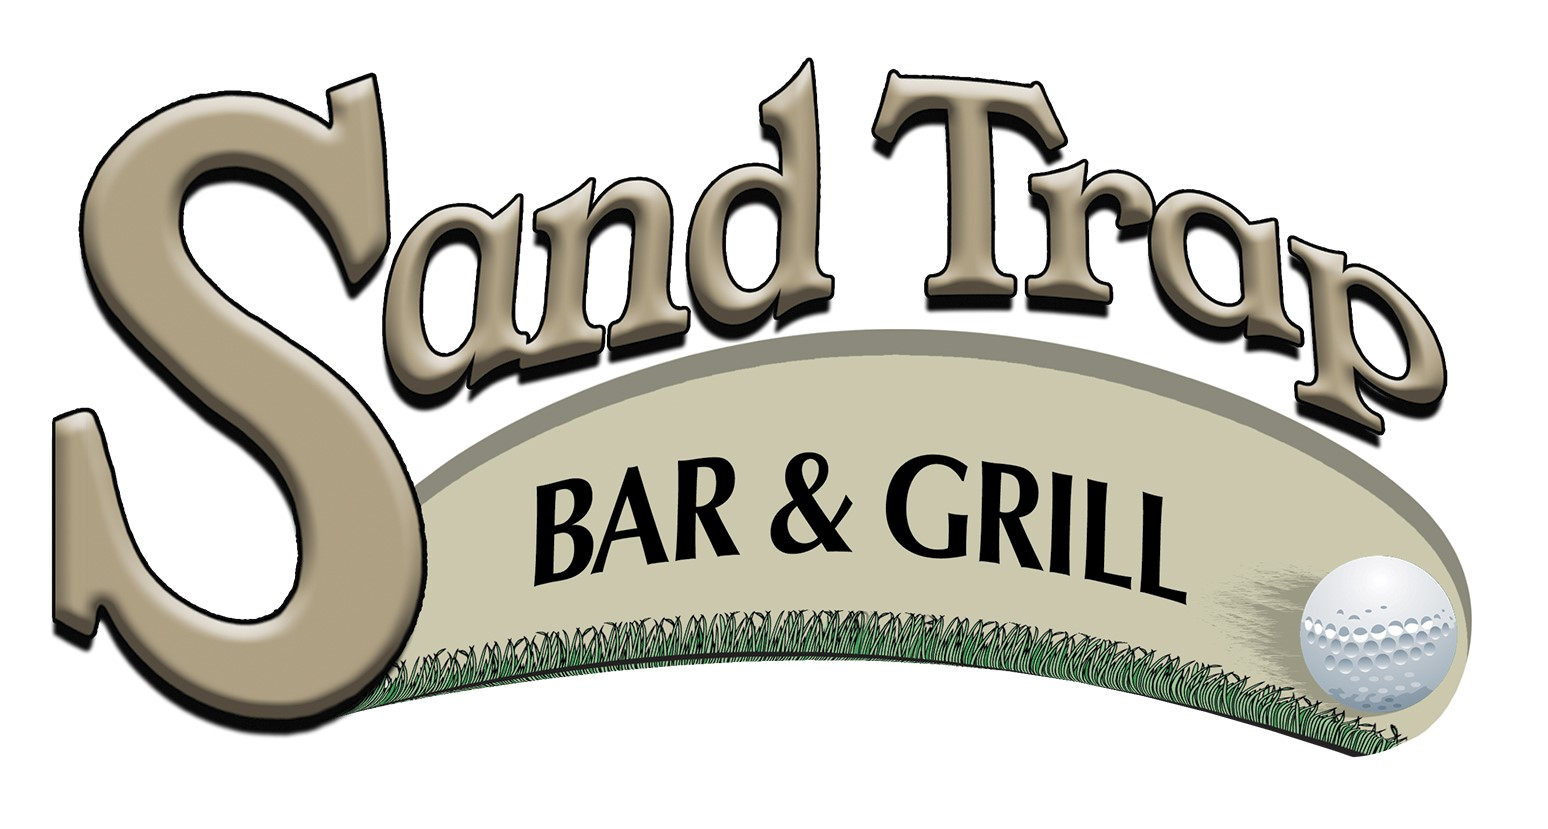 sand-Trap-Bar-and-Grill